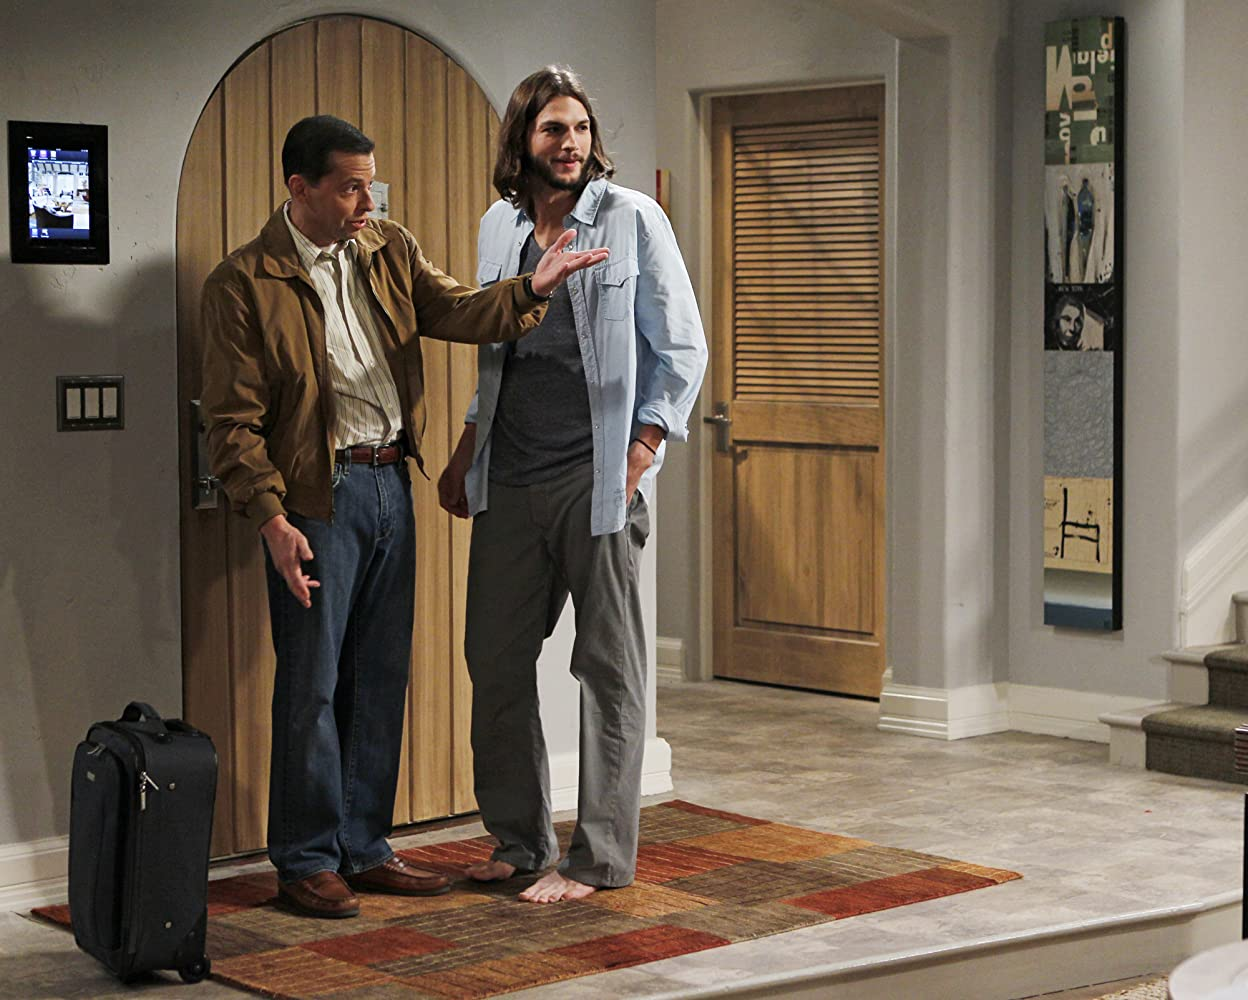 Jon Cryer and Ashton Kutcher in Two and a Half Men 2003